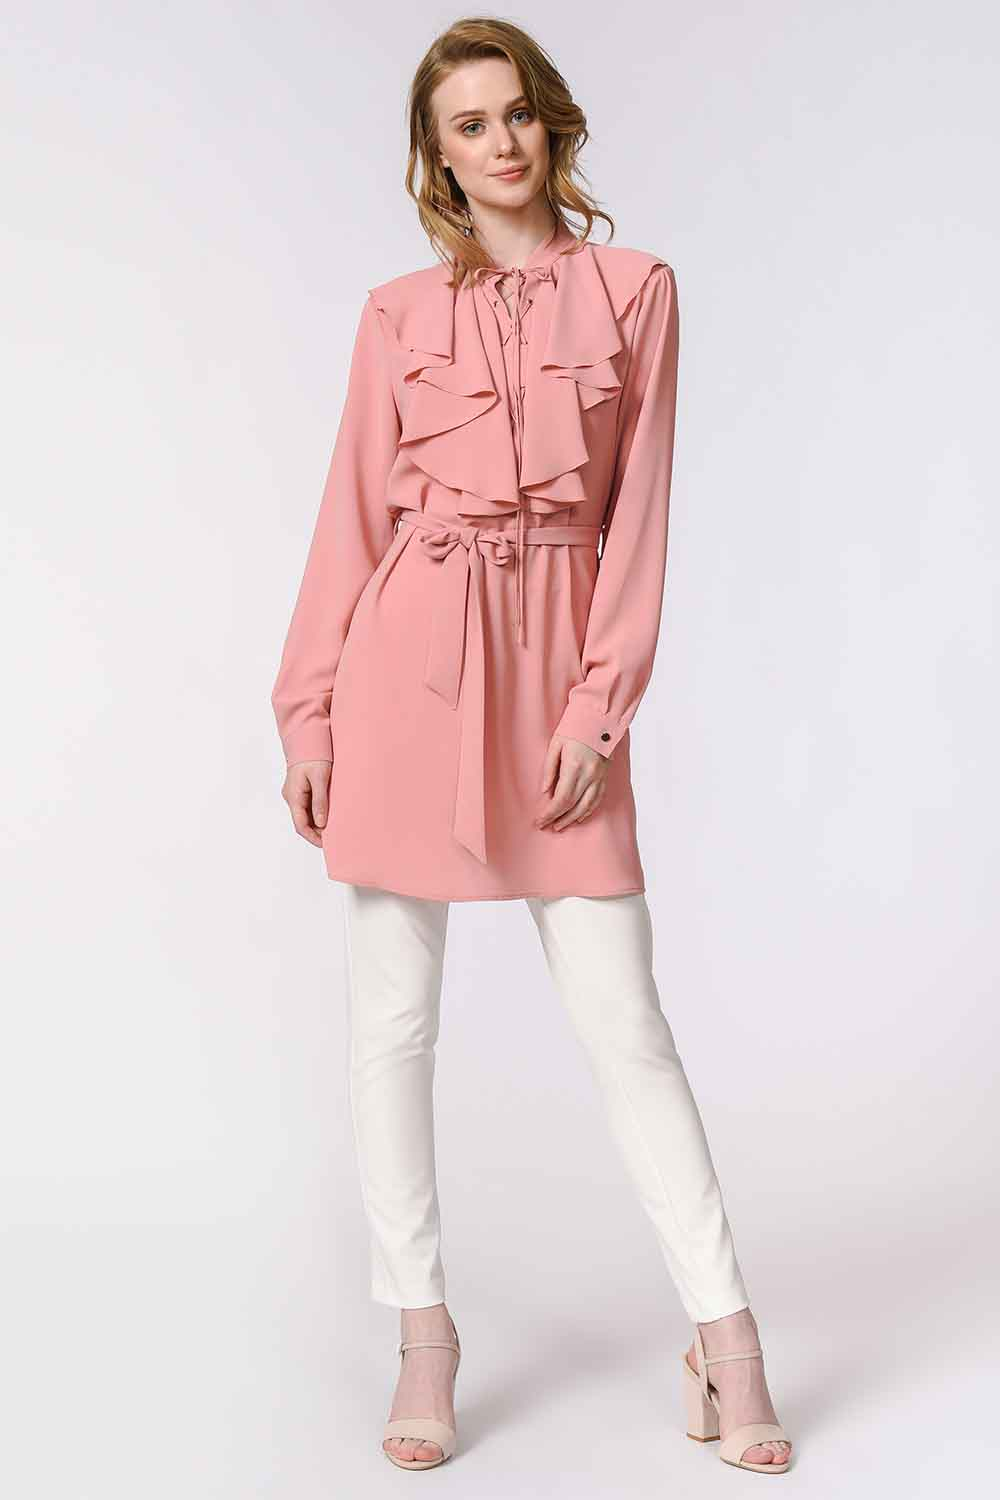 MIZALLE Bird Eyed Laced Blouse (Rose) (1)